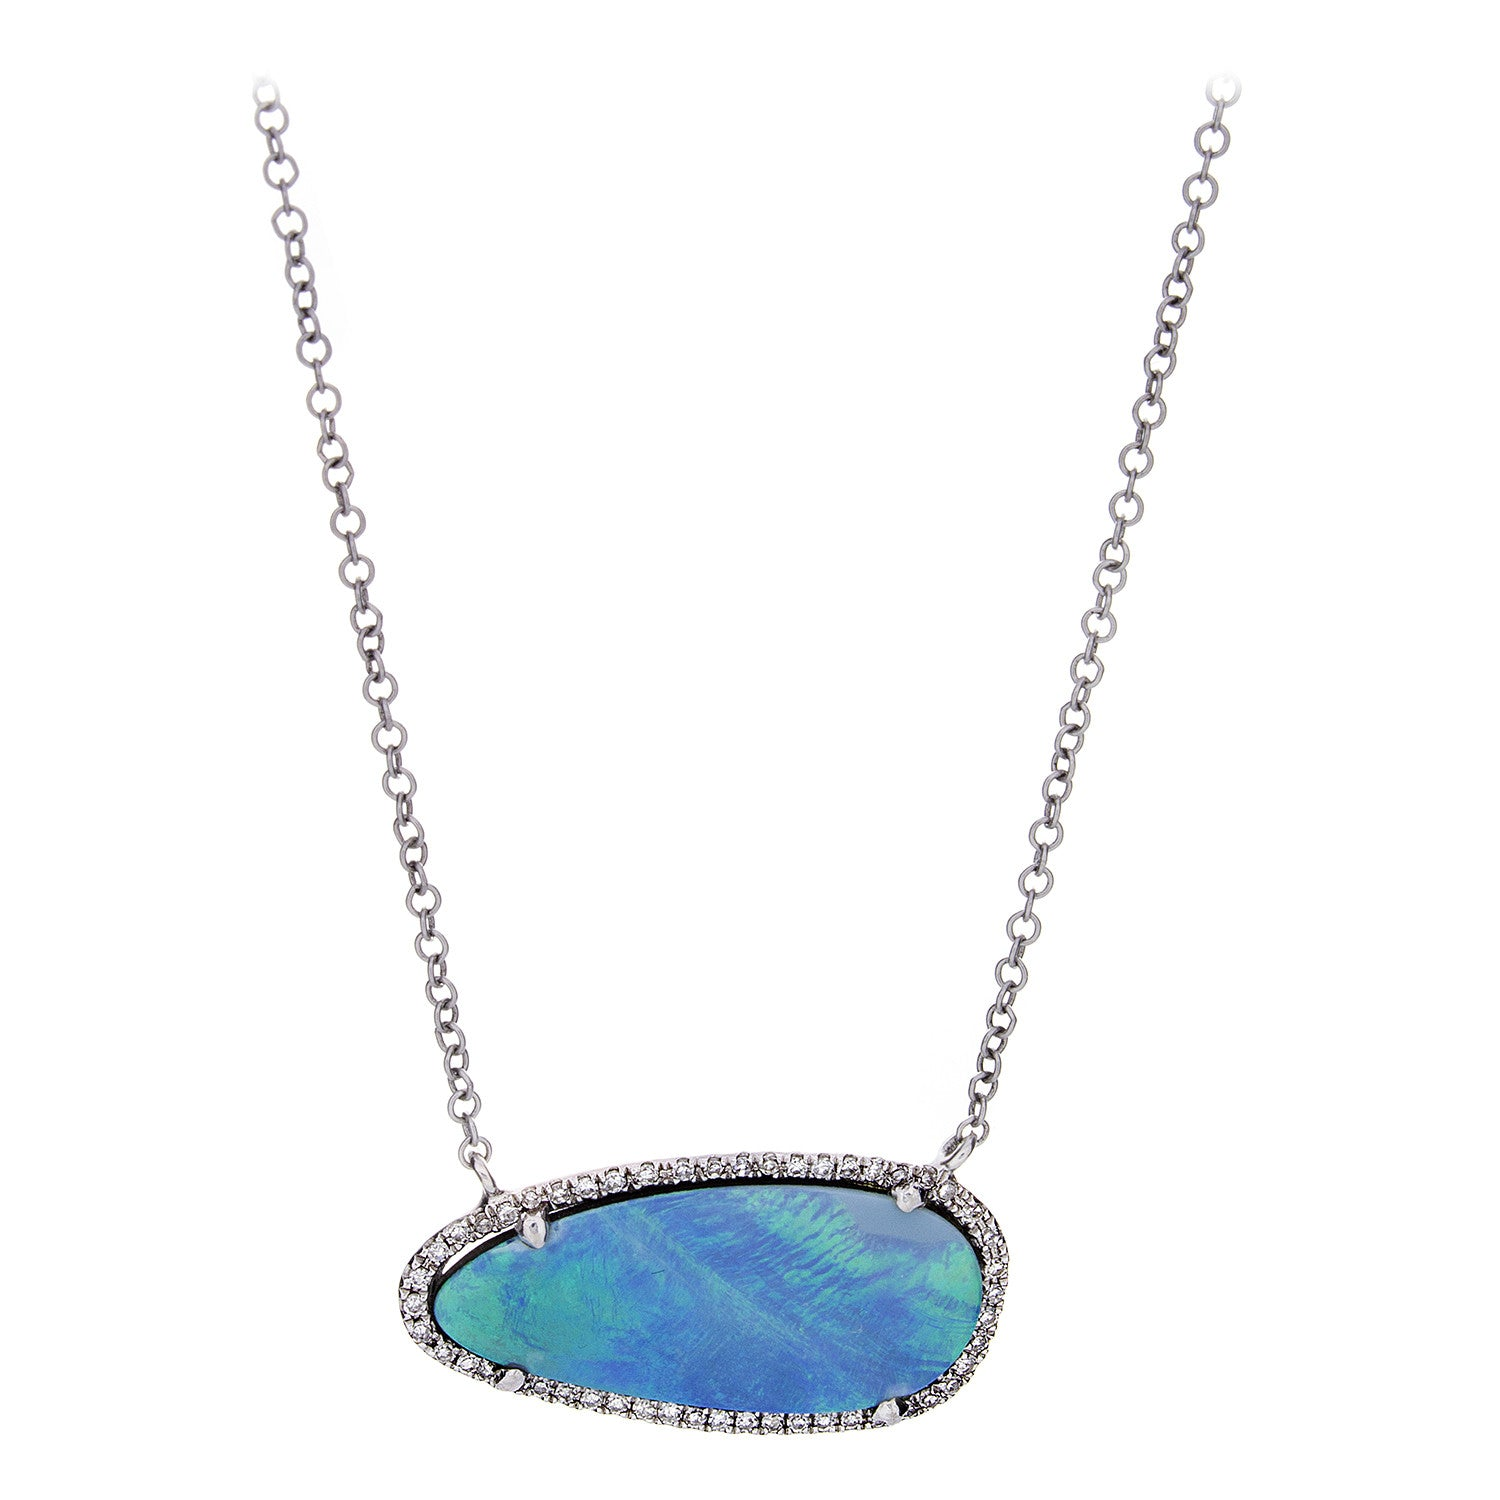 Diamond Opal White Gold Necklace - SOLD/CAN BE SPECIAL ORDERED WITH 4-6 WEEKS DELIVERY TIME FRAME